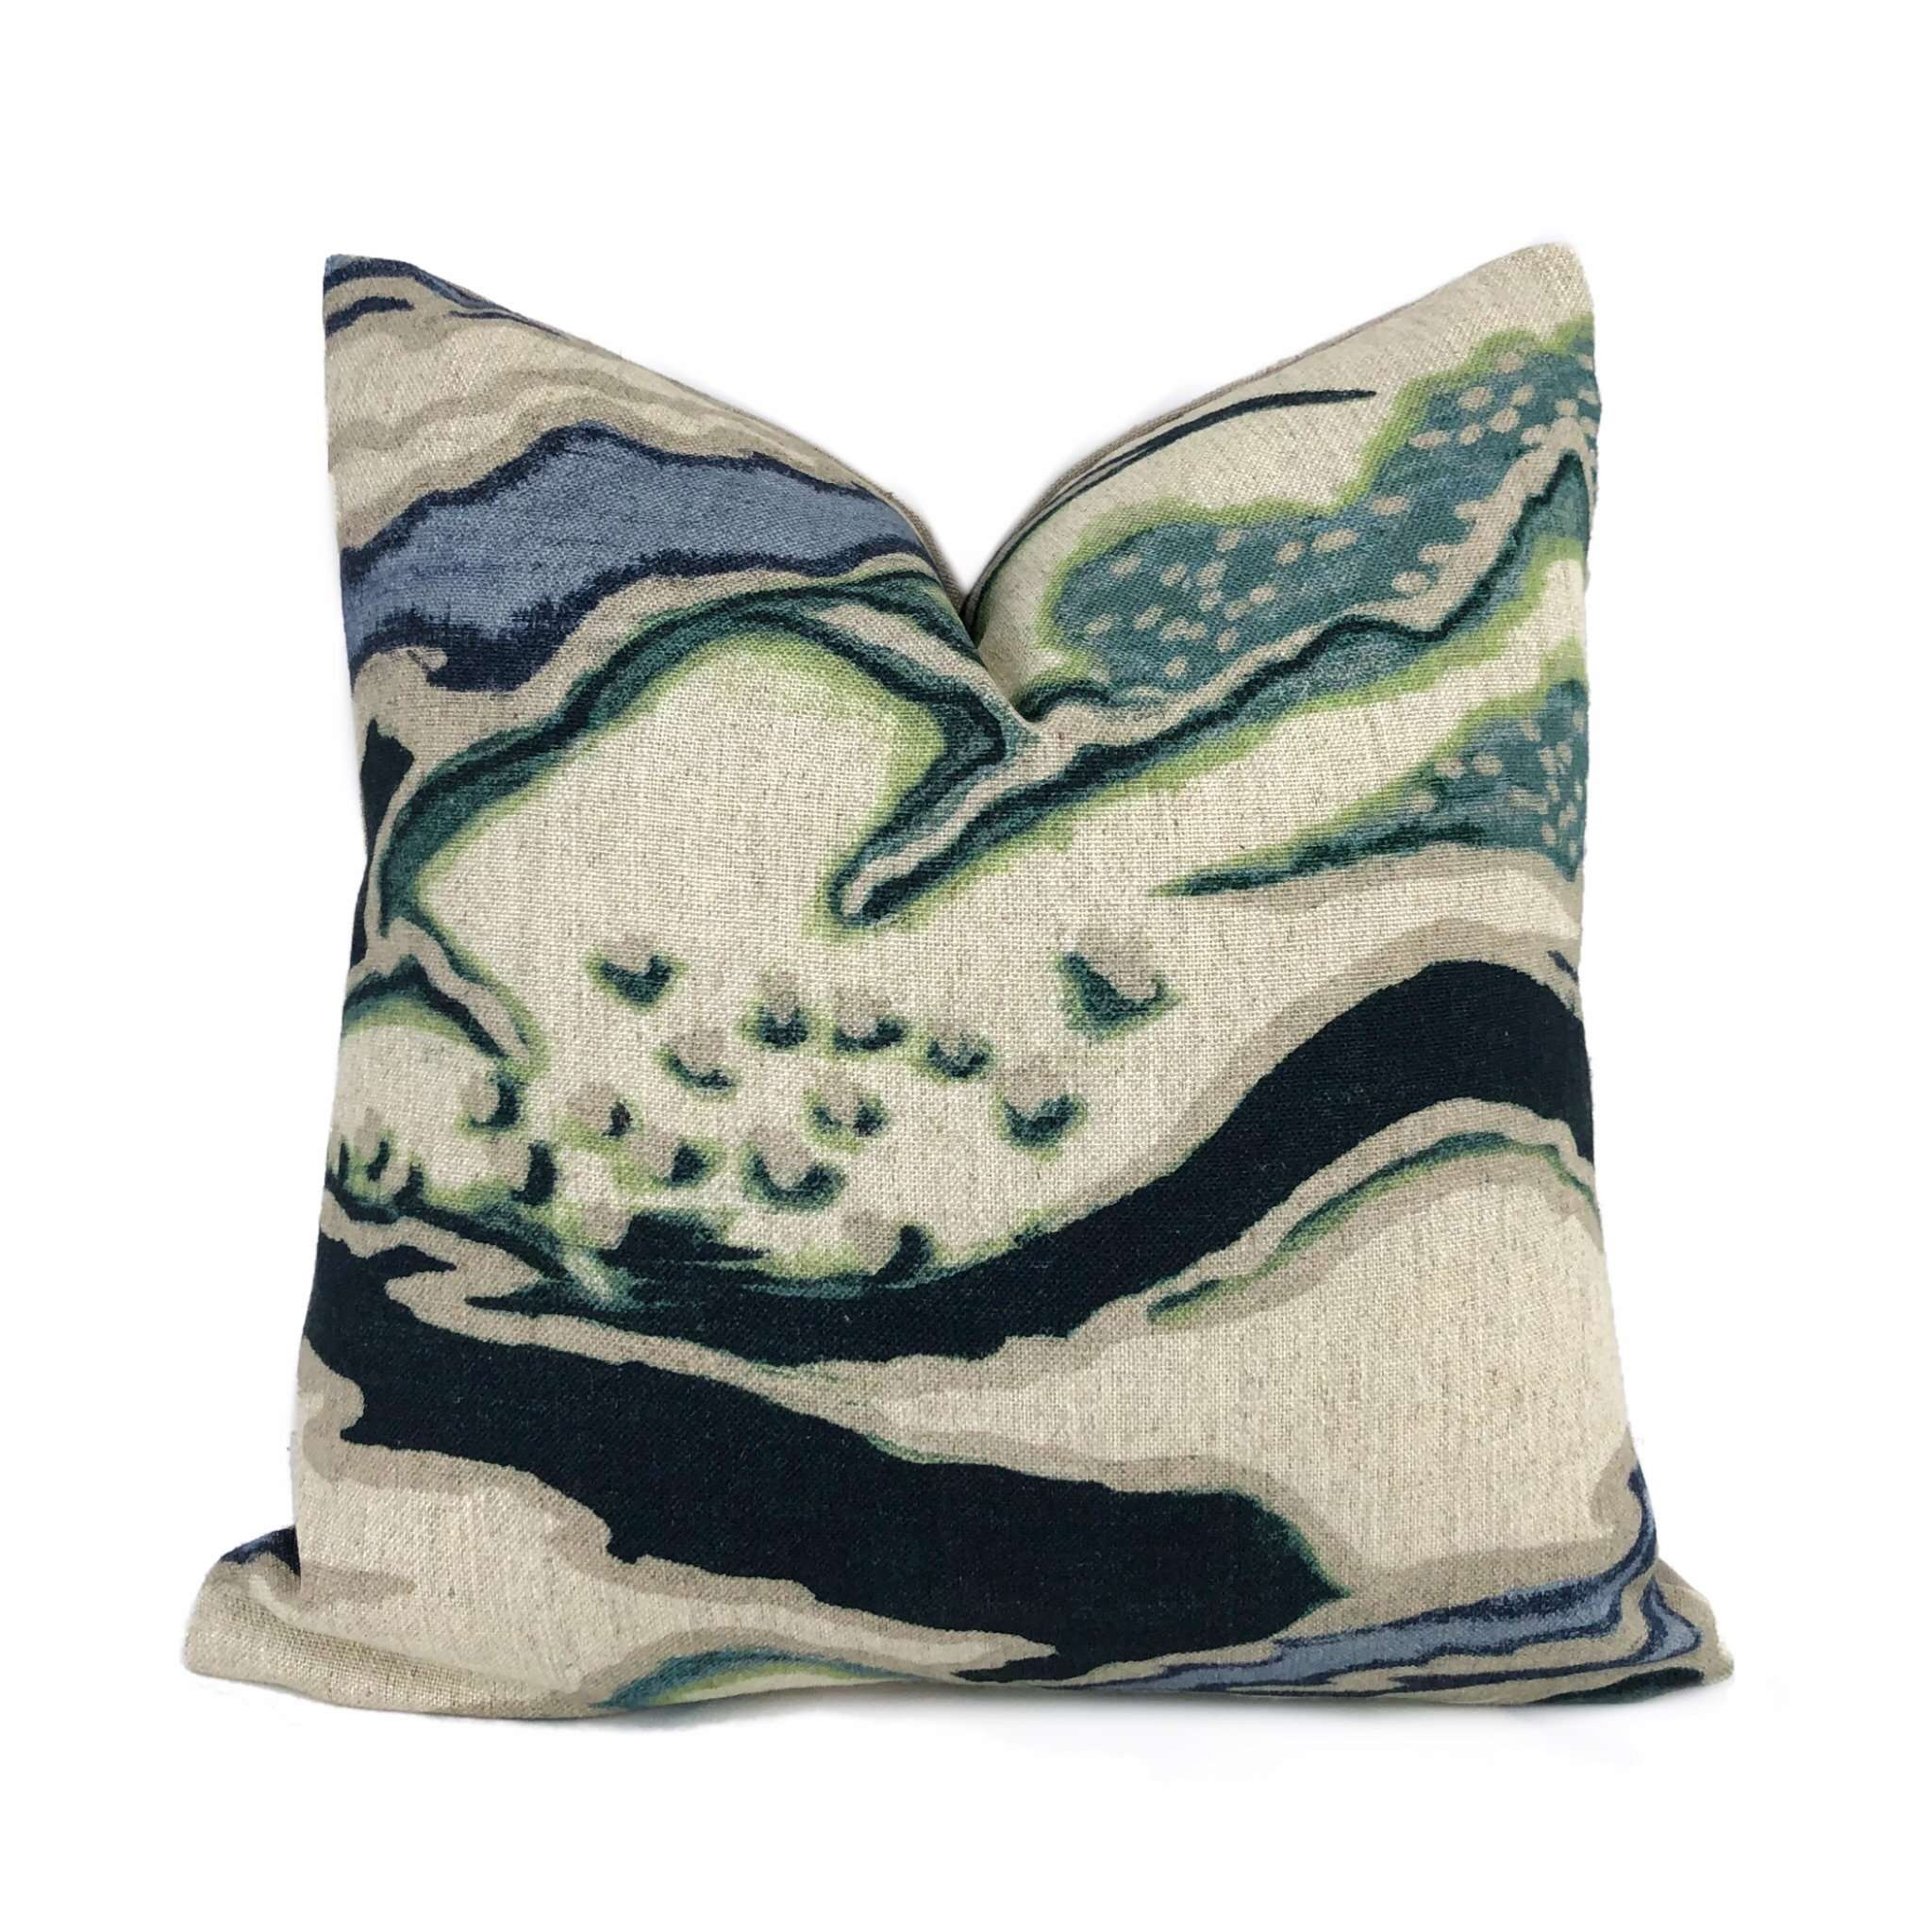 Robert Allen Chattingham Batik Blue Abstract Pictorial Pillow Cover Cushion Pillow Case Euro Sham 16x16 18x18 20x20 22x22 24x24 26x26 28x28 Lumbar Pillow 12x18 12x20 12x24 14x20 16x26 by Aloriam